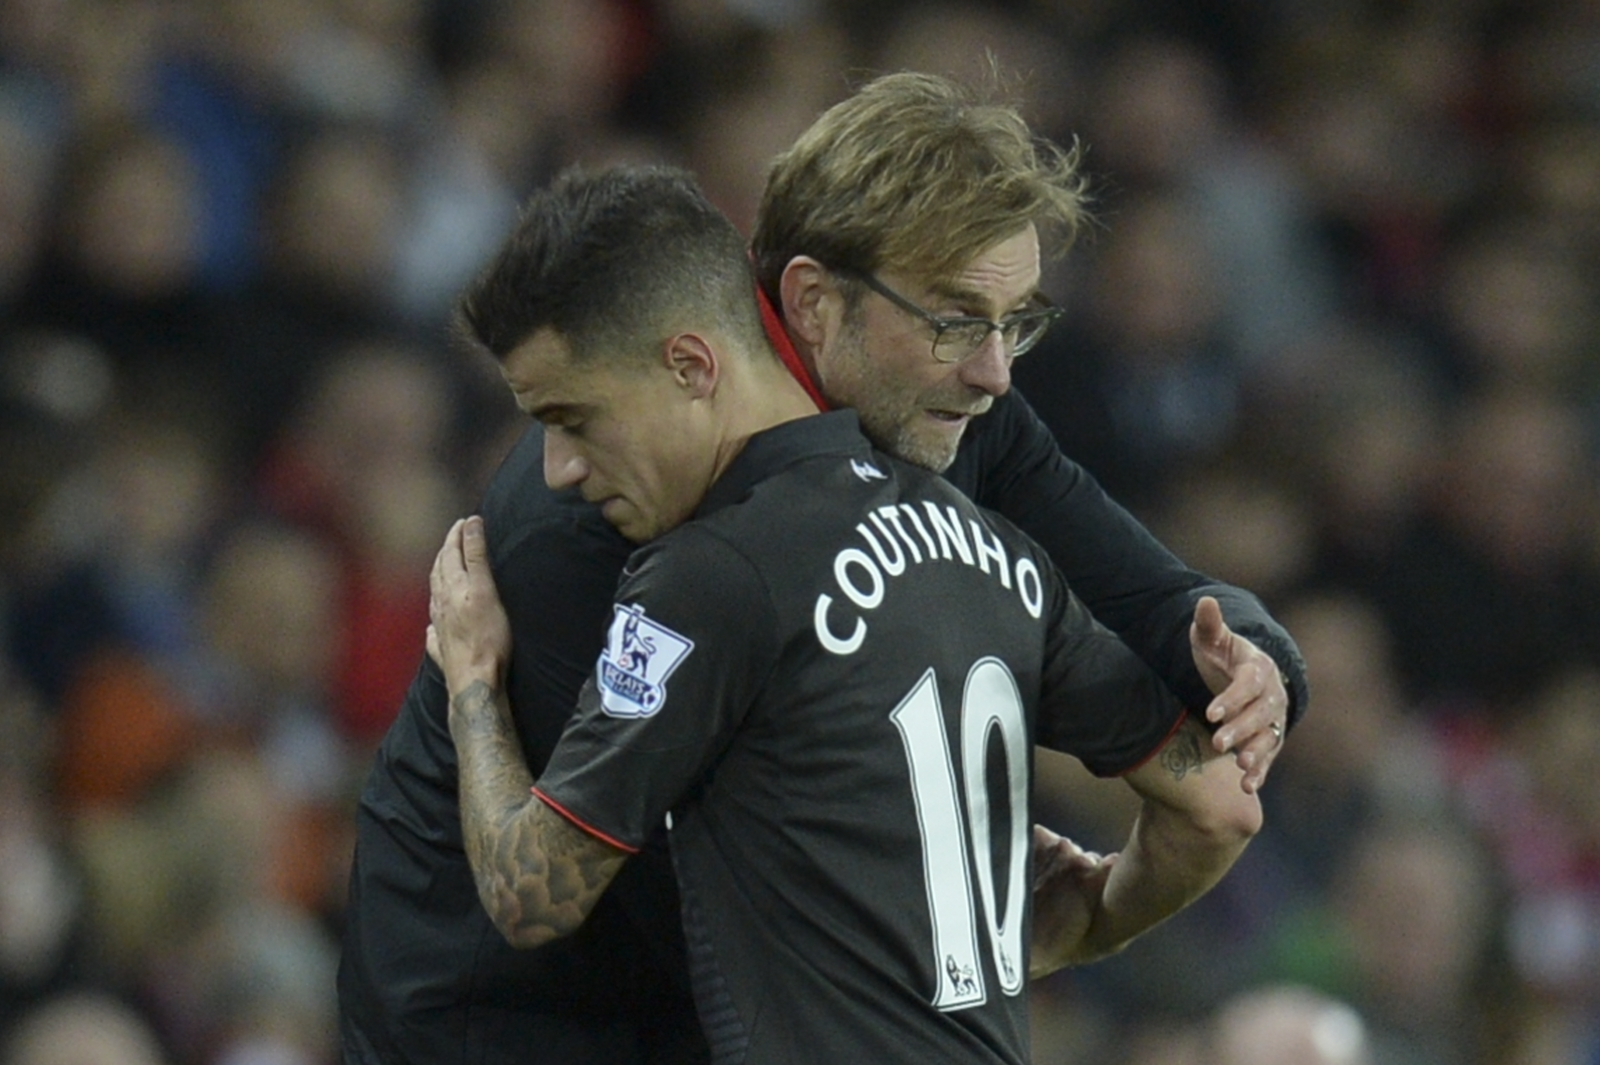 jurgen-klopp-insists-philippe-coutinho-is-not-for-sale-despite-barcelona-interest